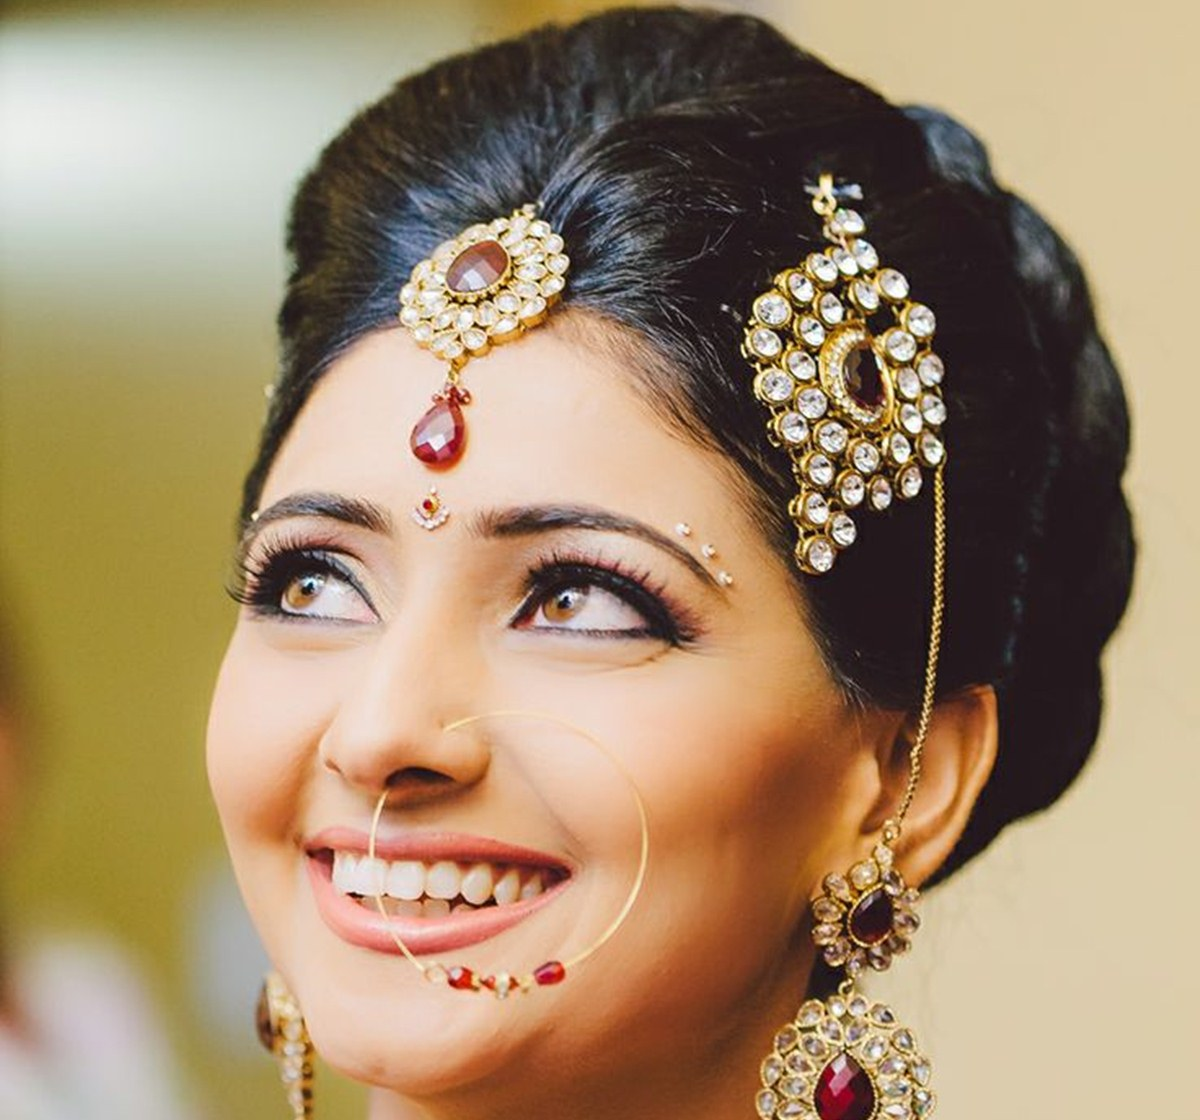 View 9 Types Of Indian Bridal Jewellery